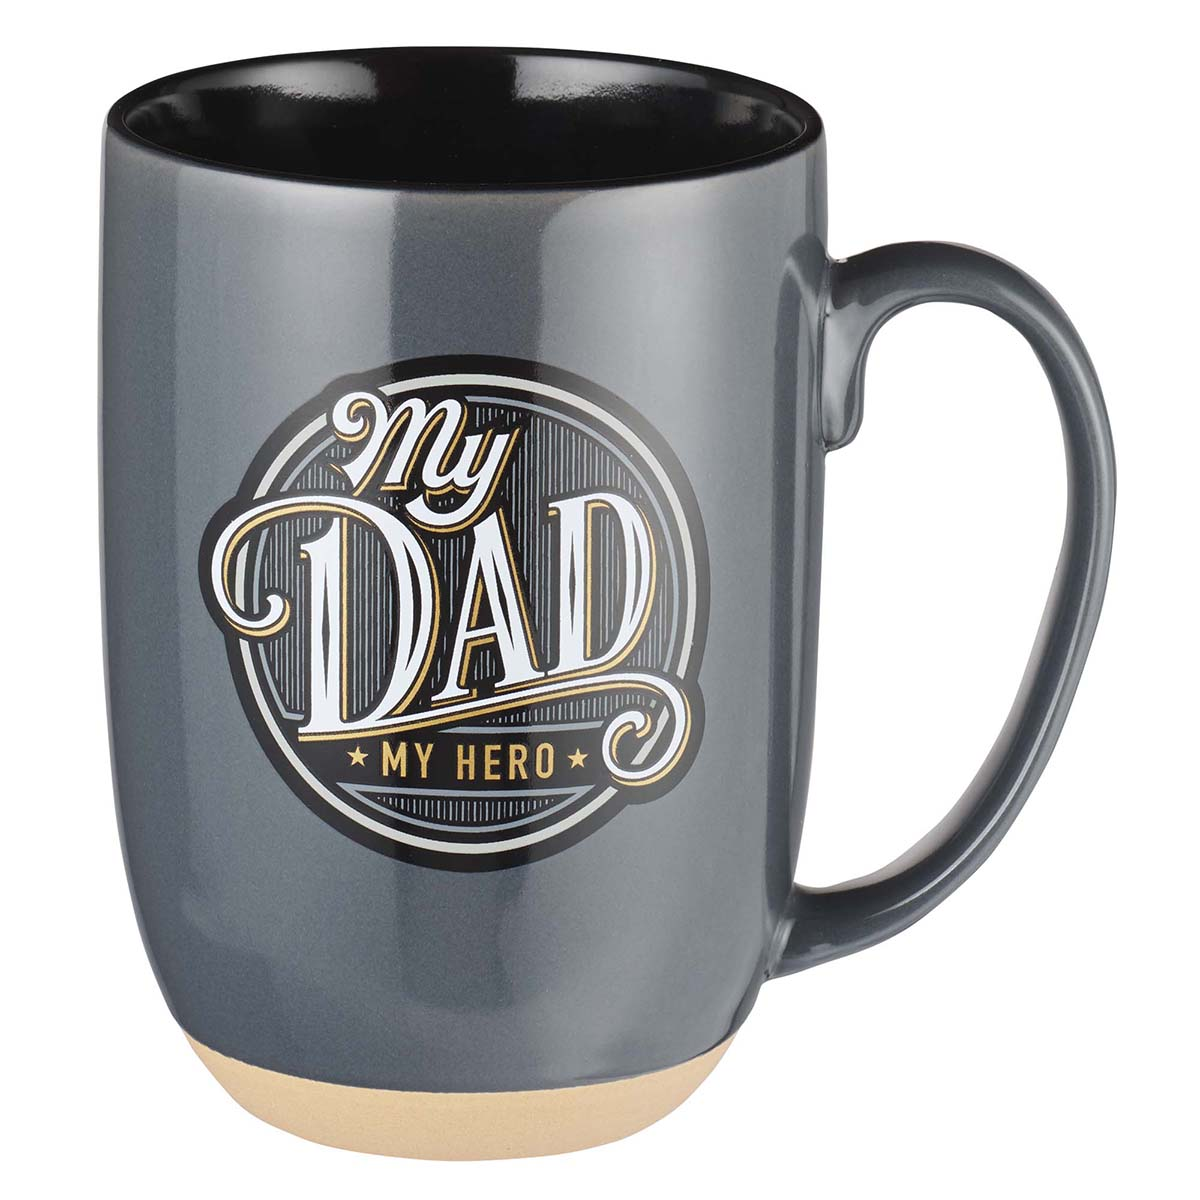 My Dad, My Hero Ceramic Mug with Clay Dipped Base - Proverbs 14:26